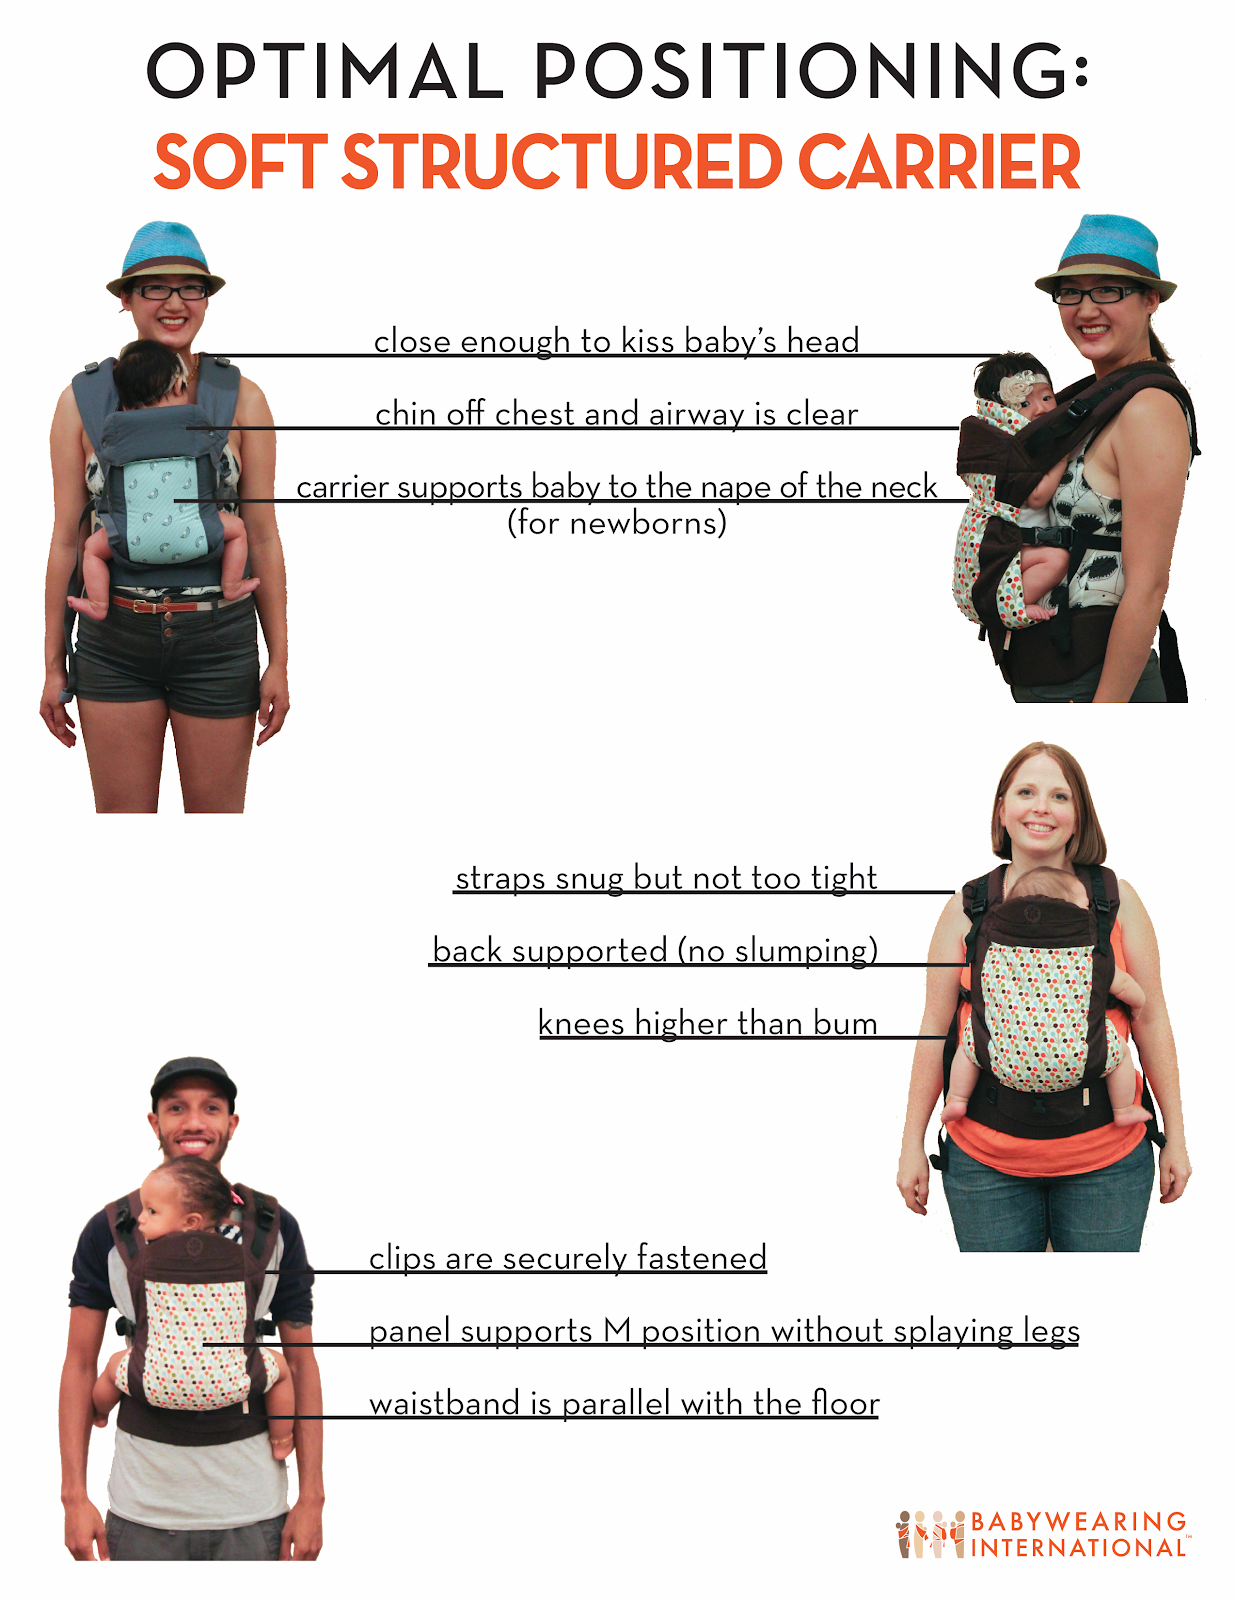 Soft Structured Carrier